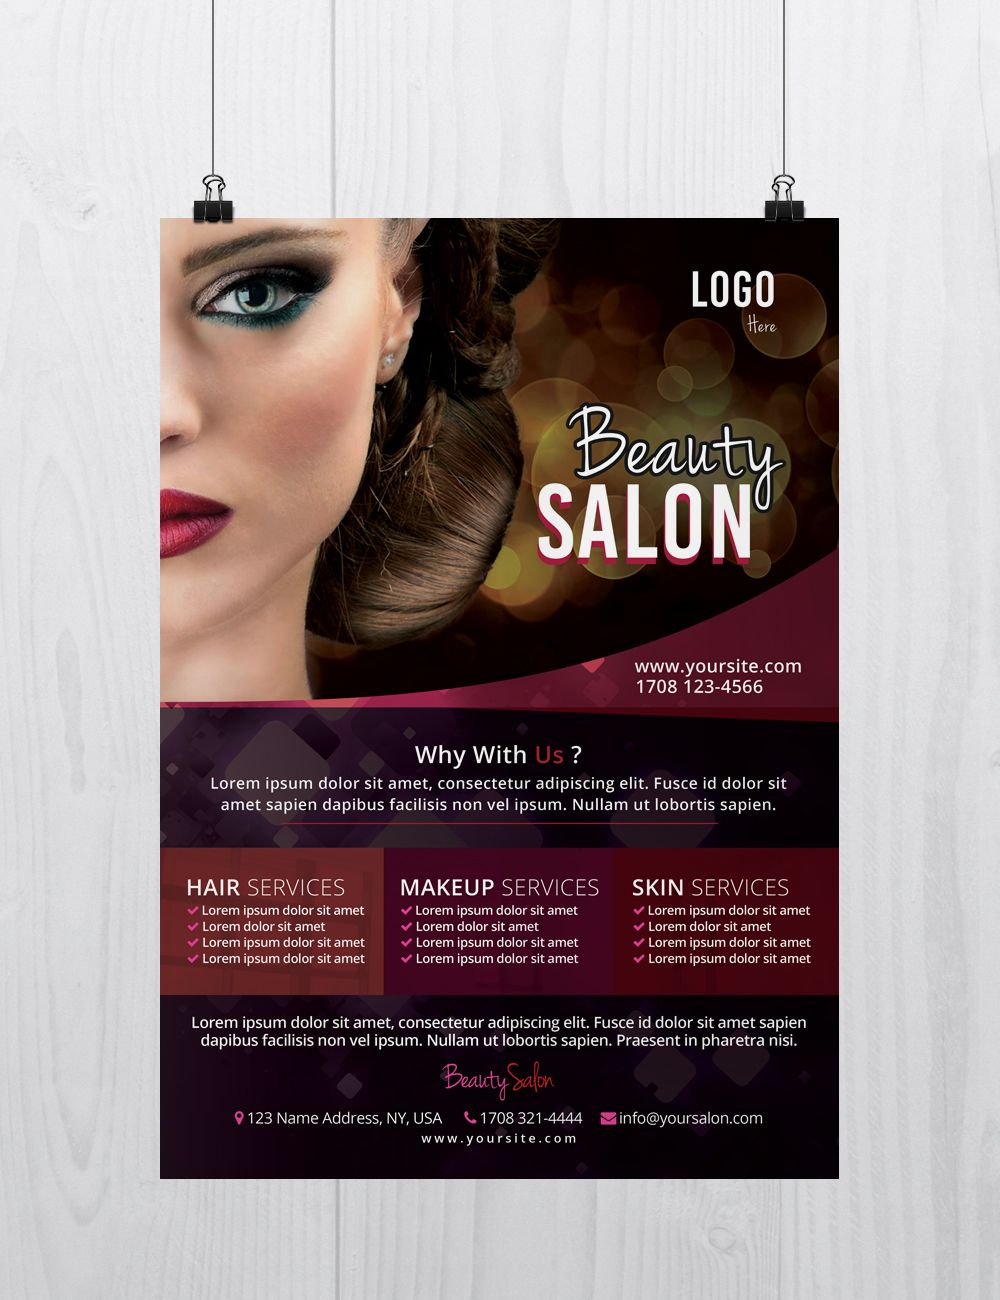 Beauty Salon Is A Free Psd Flyer Template To Download This Psd